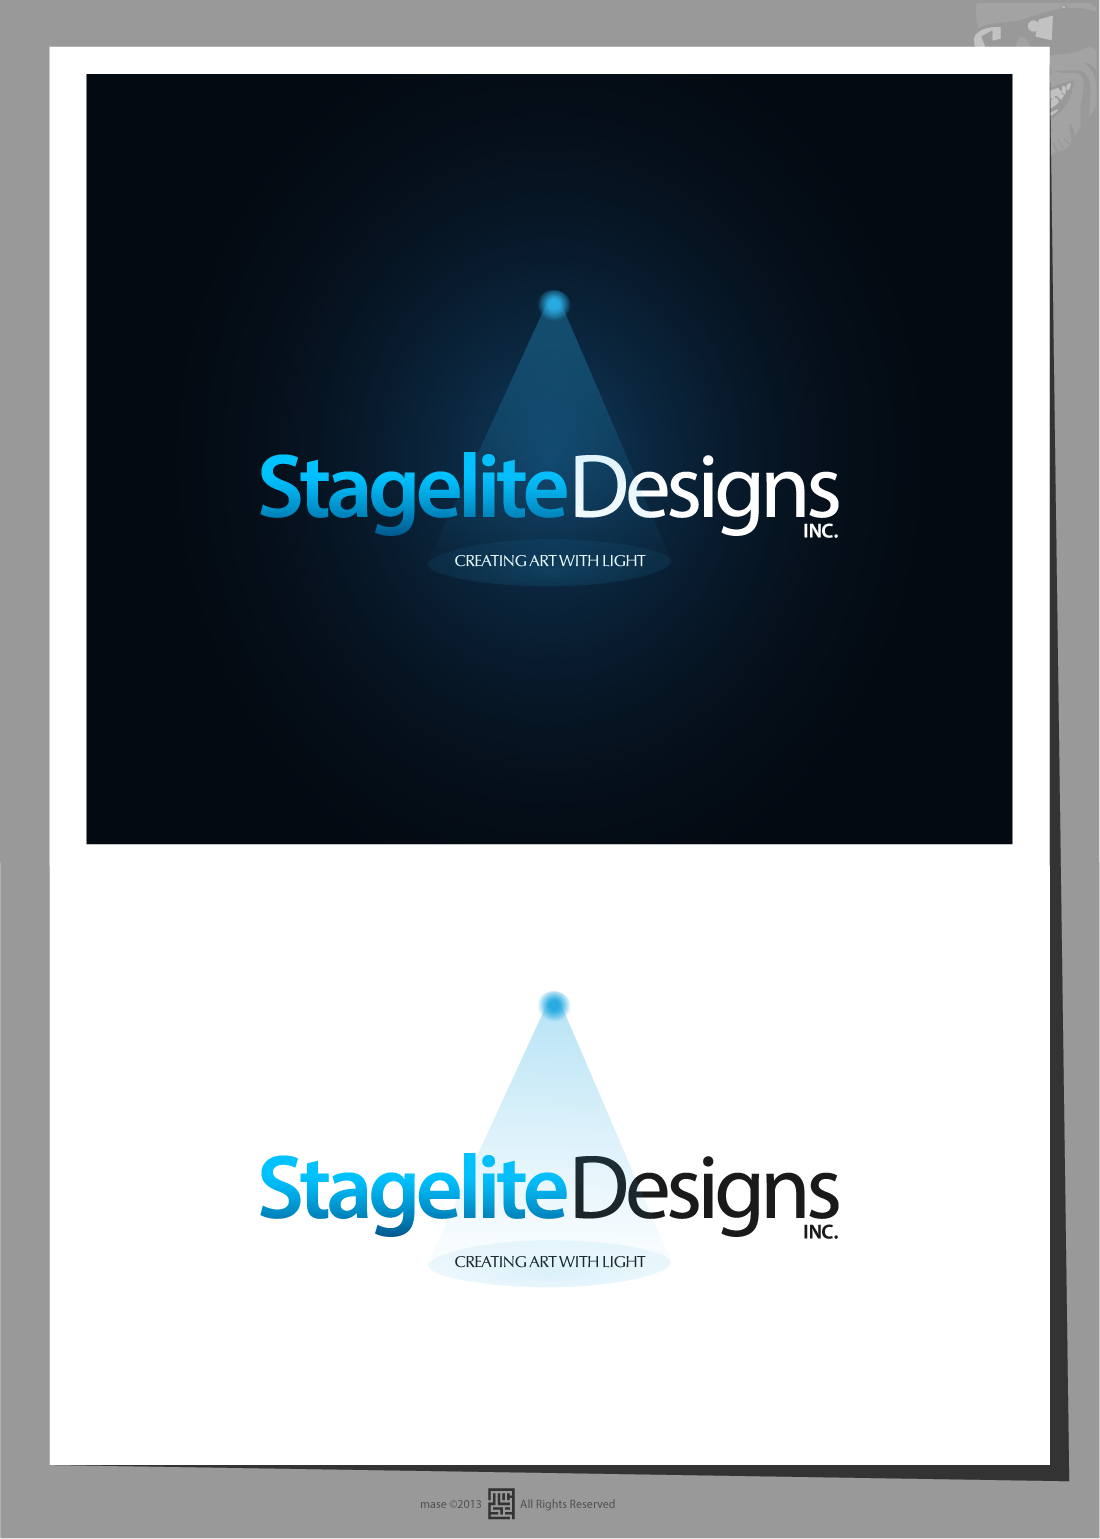 Stagelite Designs needs a new logo